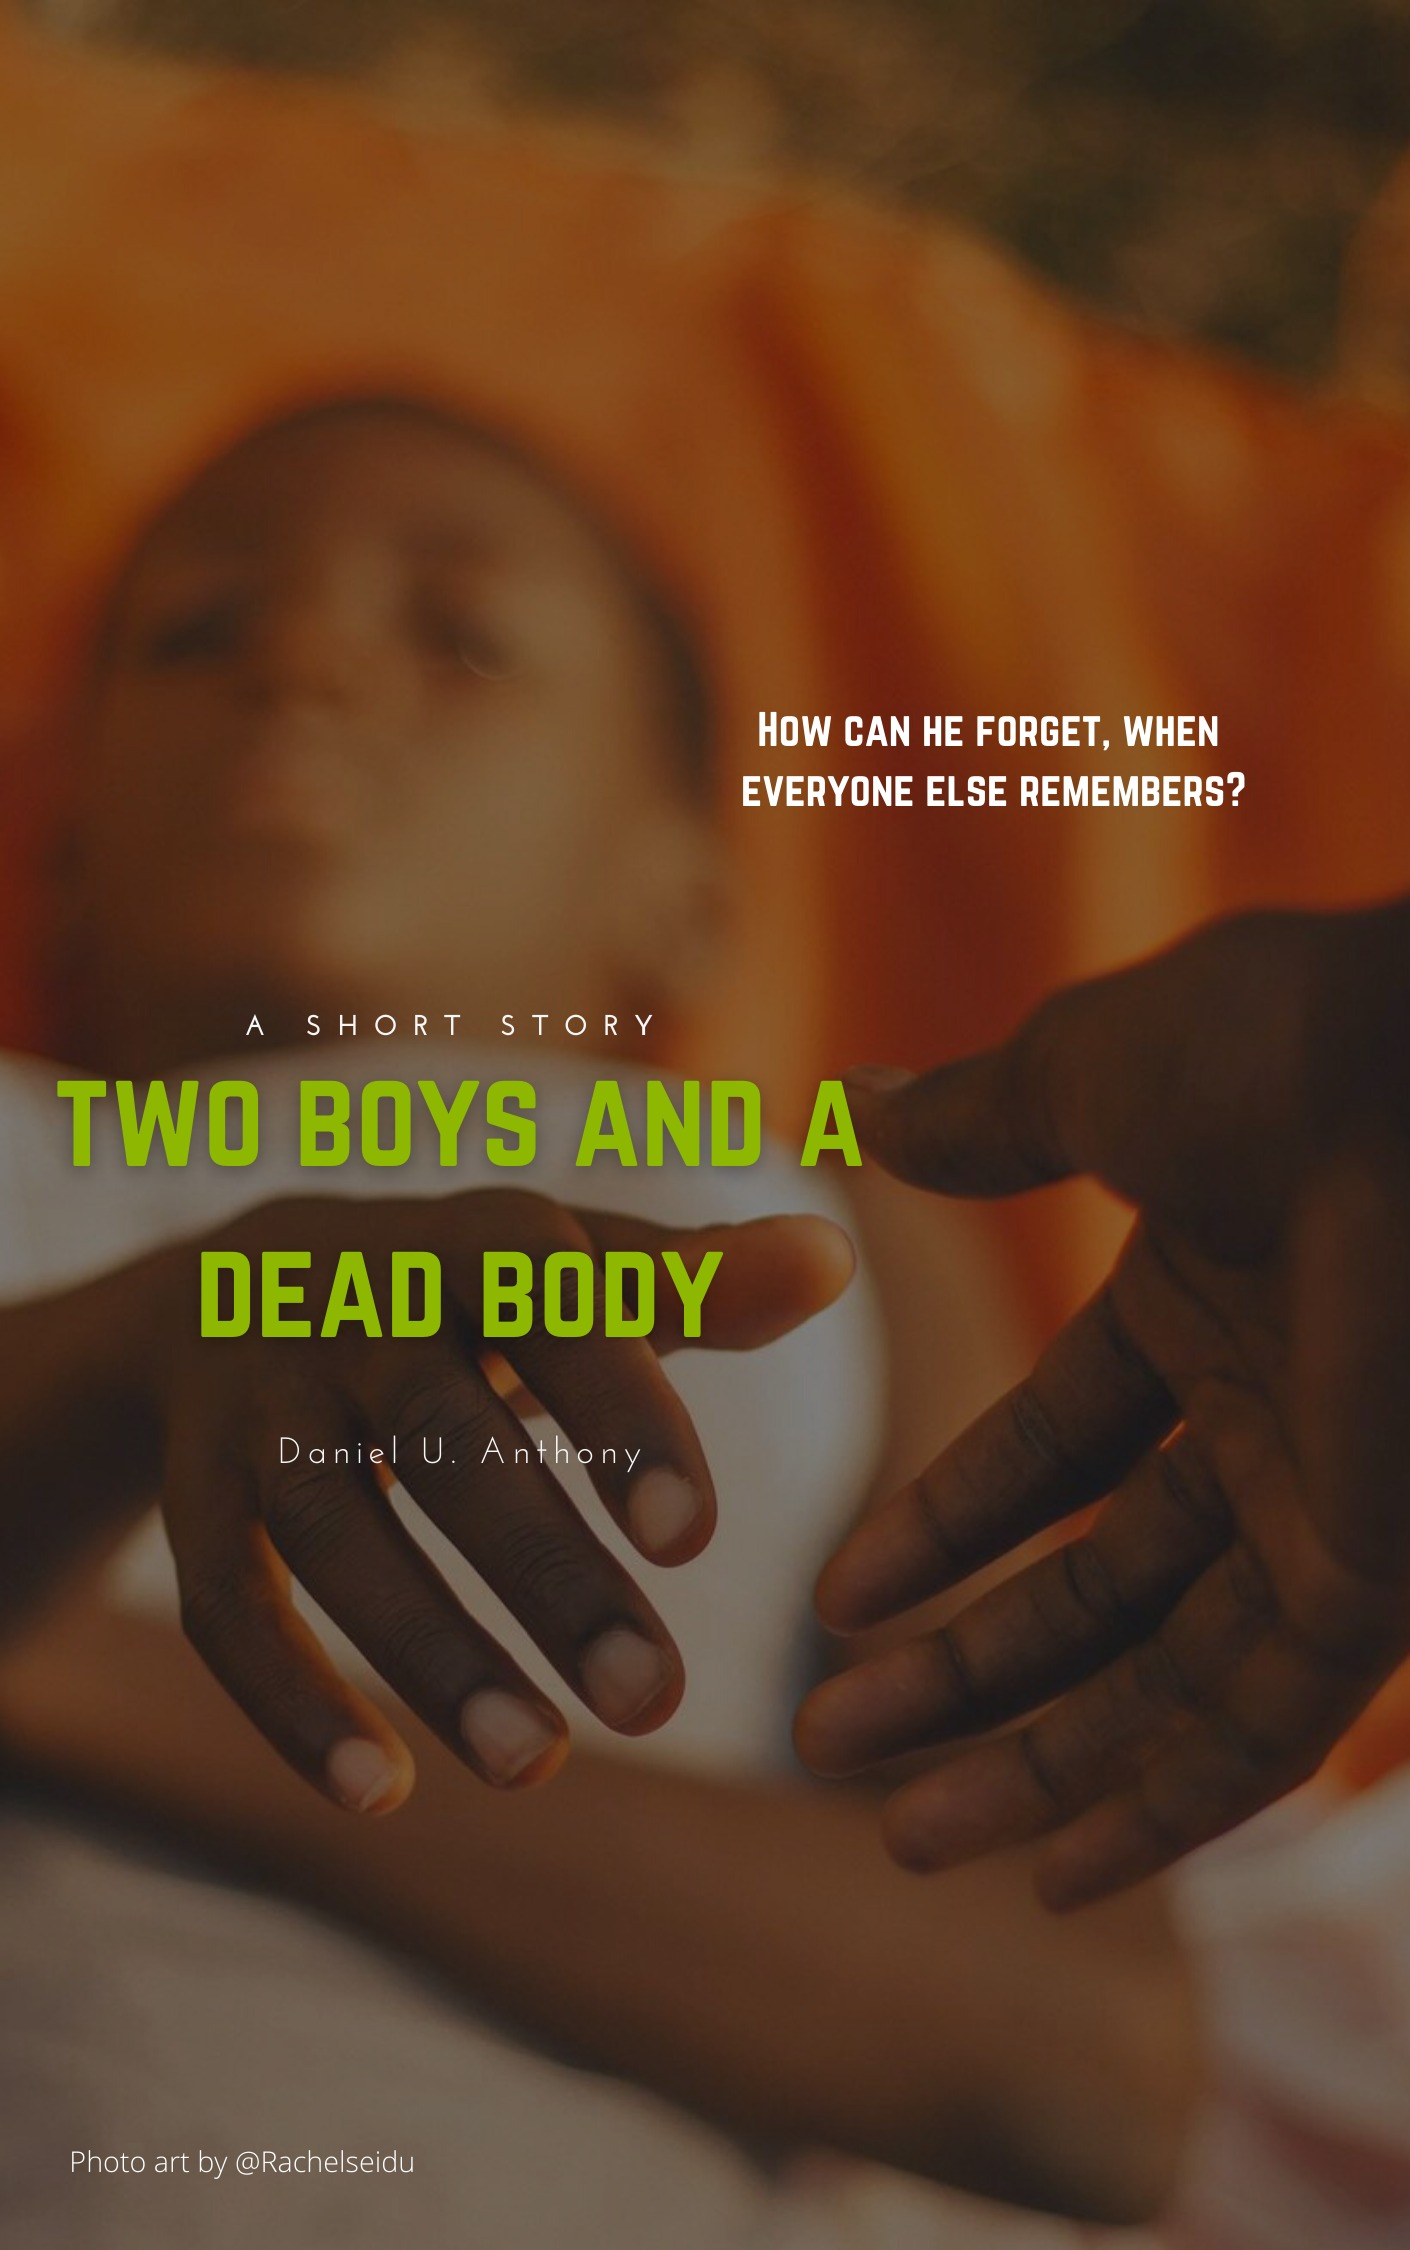 TWO BOYS AND A DEAD BODY